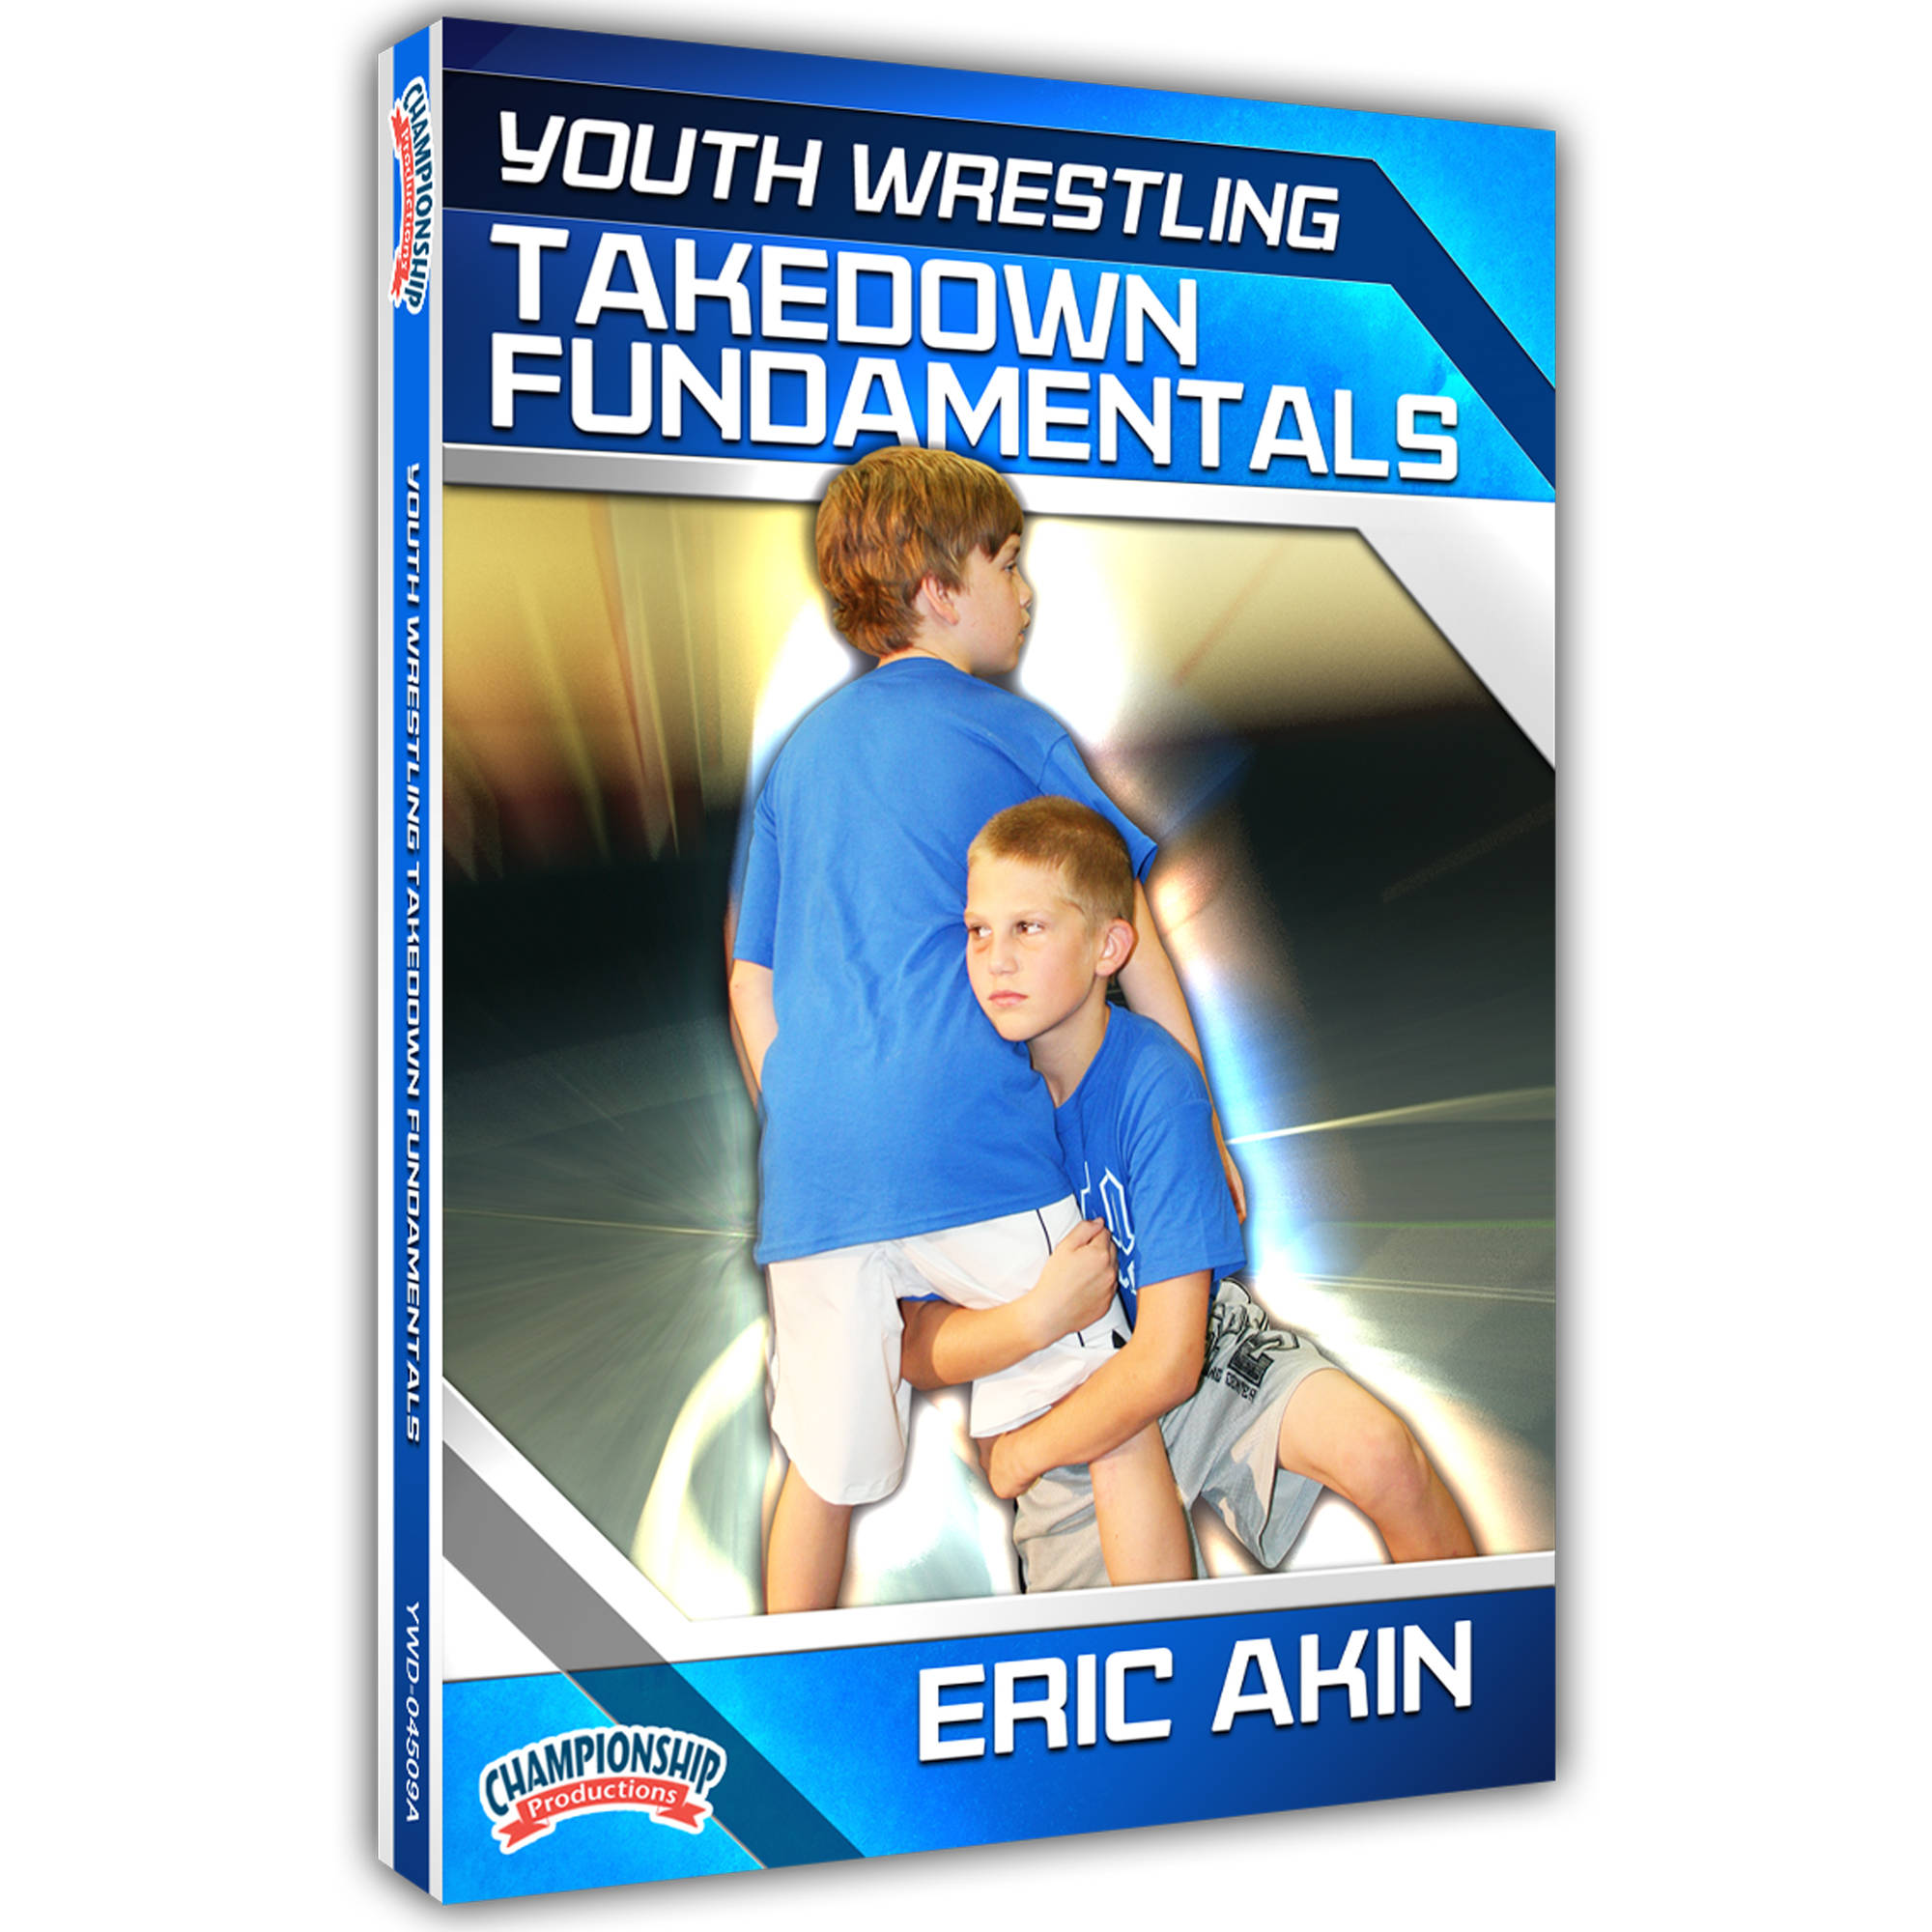 Youth Wrestling: Takedown Fundamentals DVD